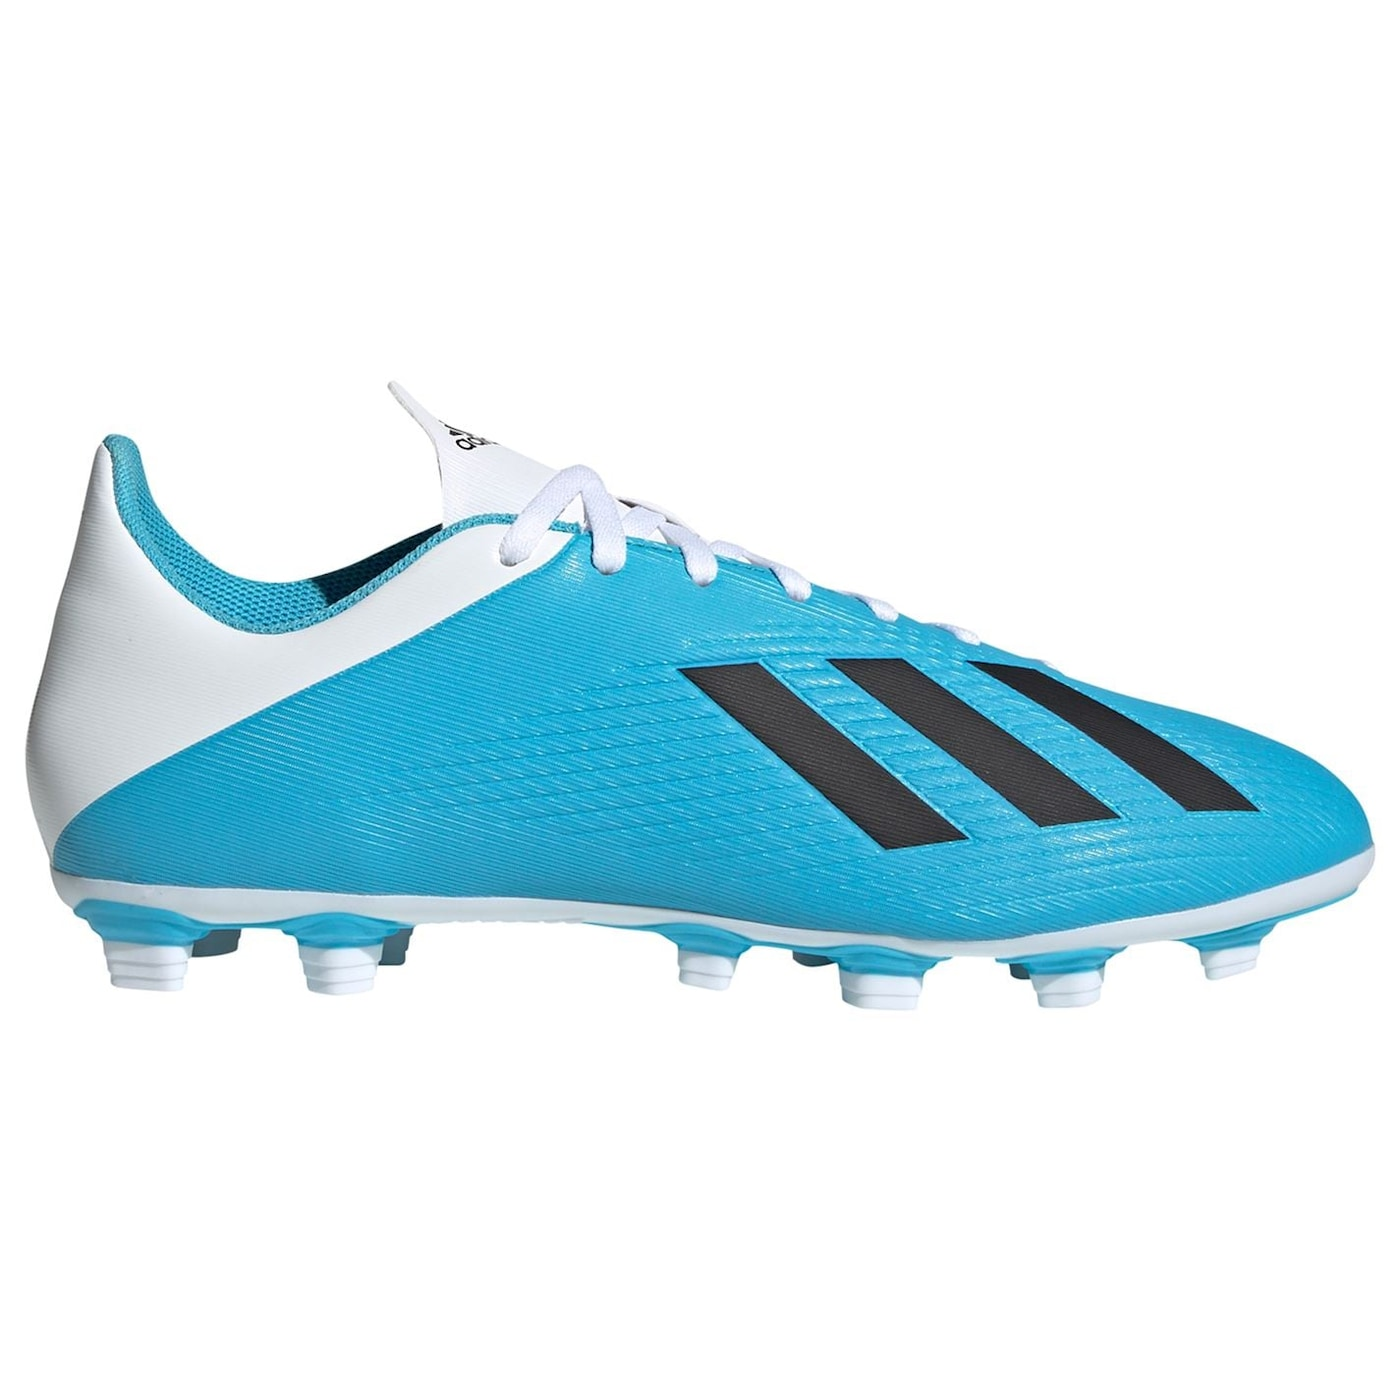 Adidas X 19.4 FG Mens Football Boots